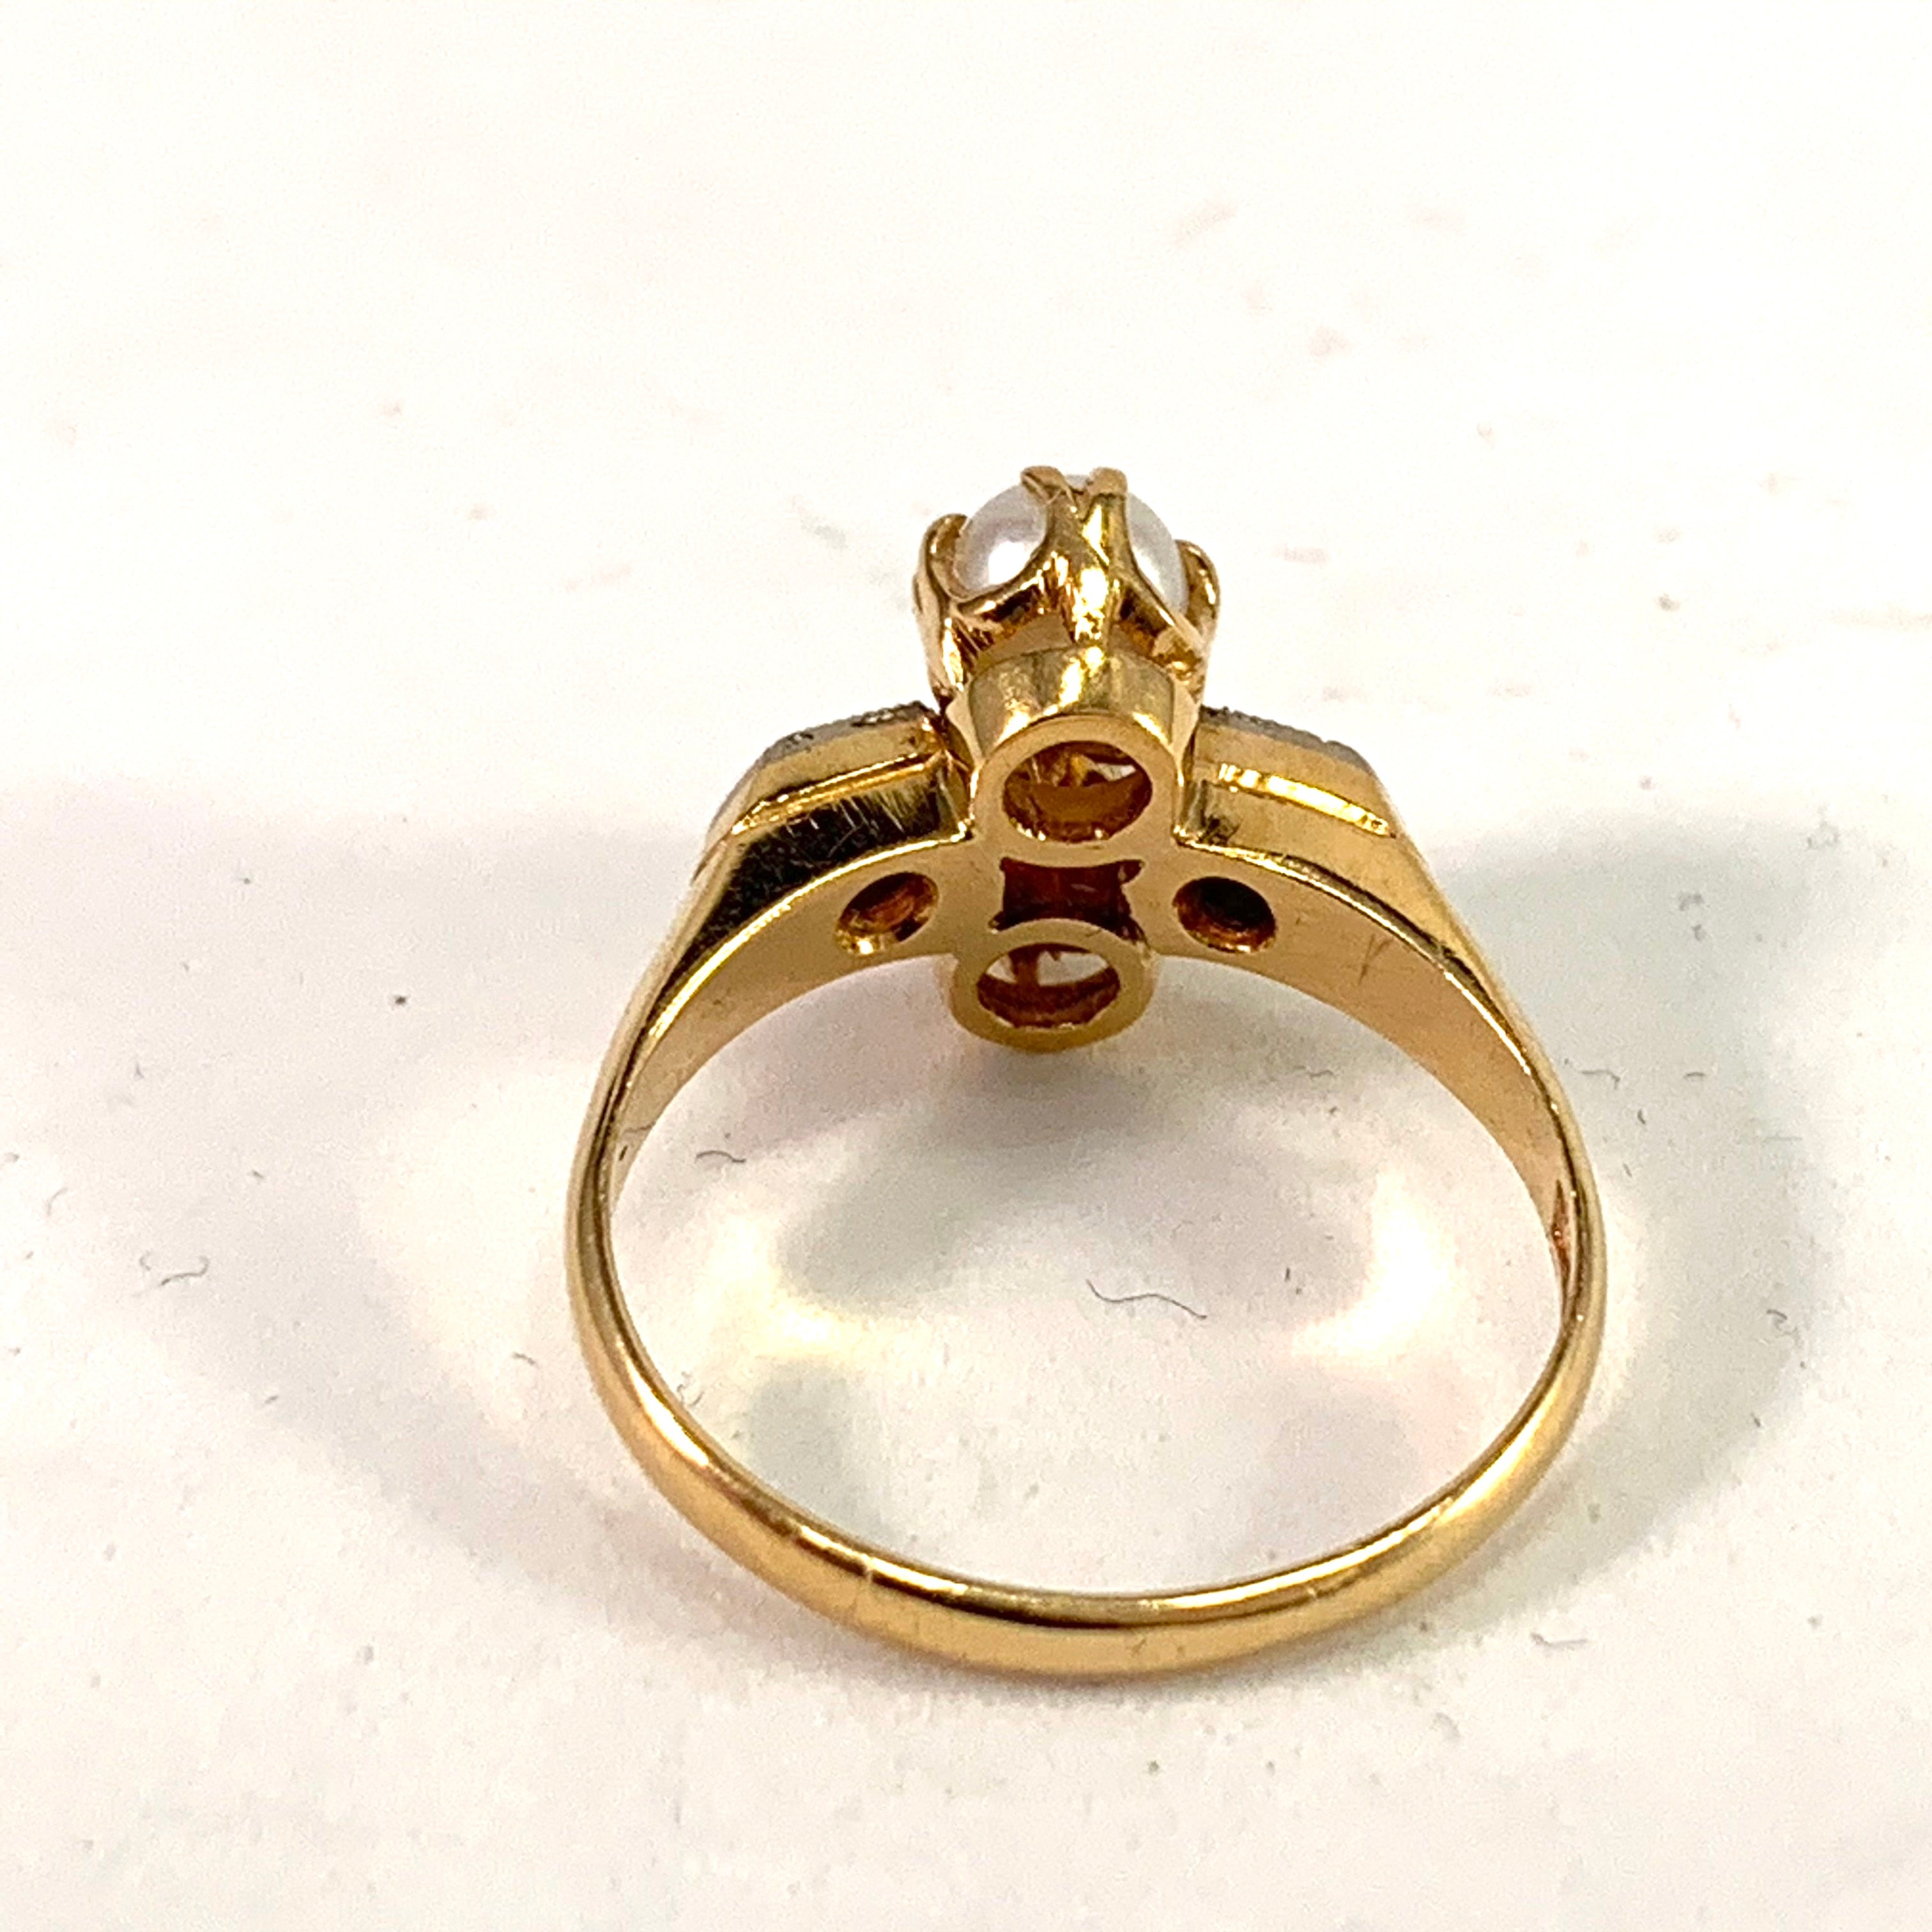 Svedbom, Sweden 1951 Mid Century 18k Gold Diamond Pearl Ring.